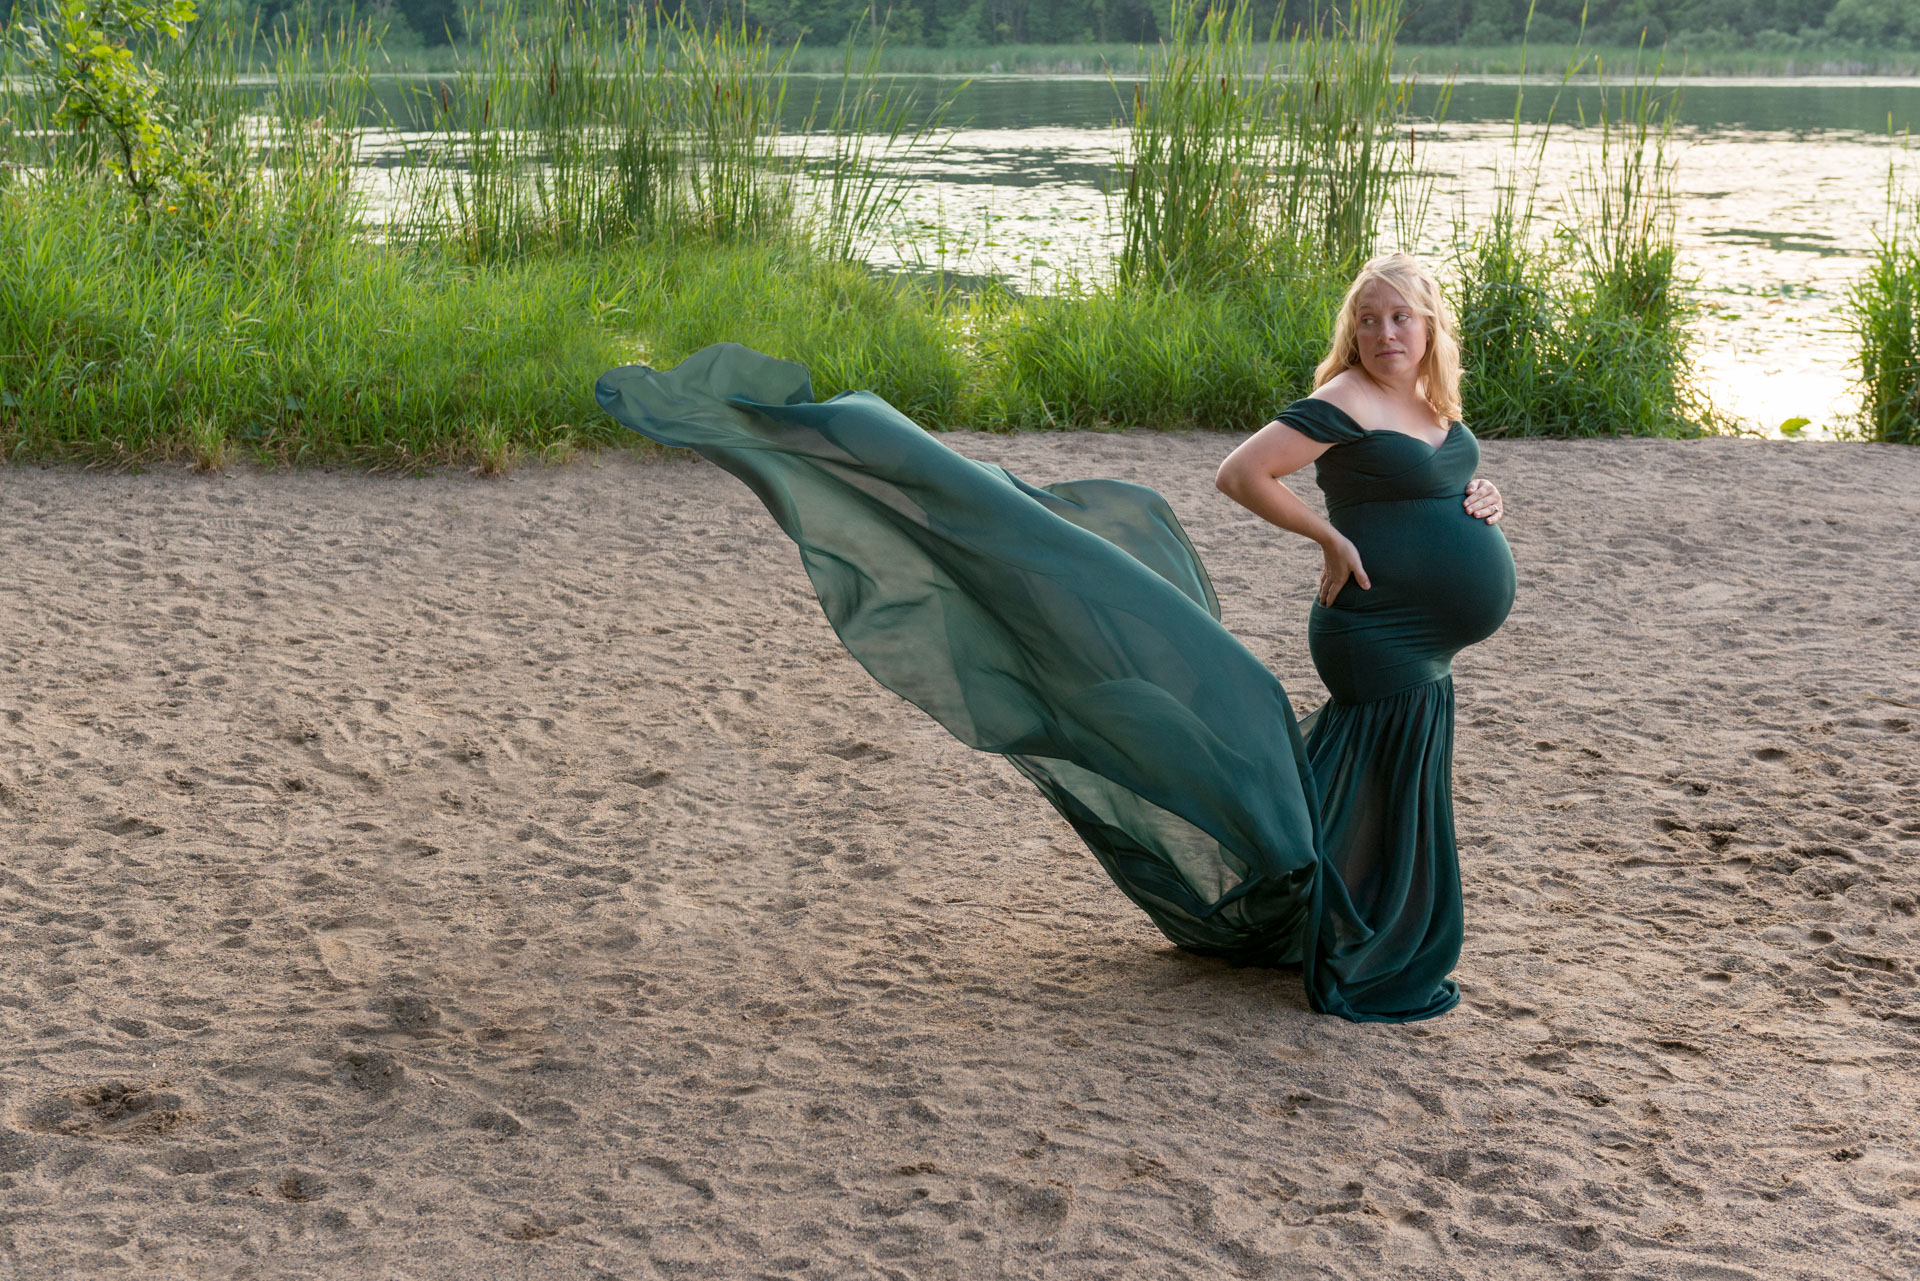 Maternity portrait session on the beach in gown with flowing train from Addie Lane Studios' client closet